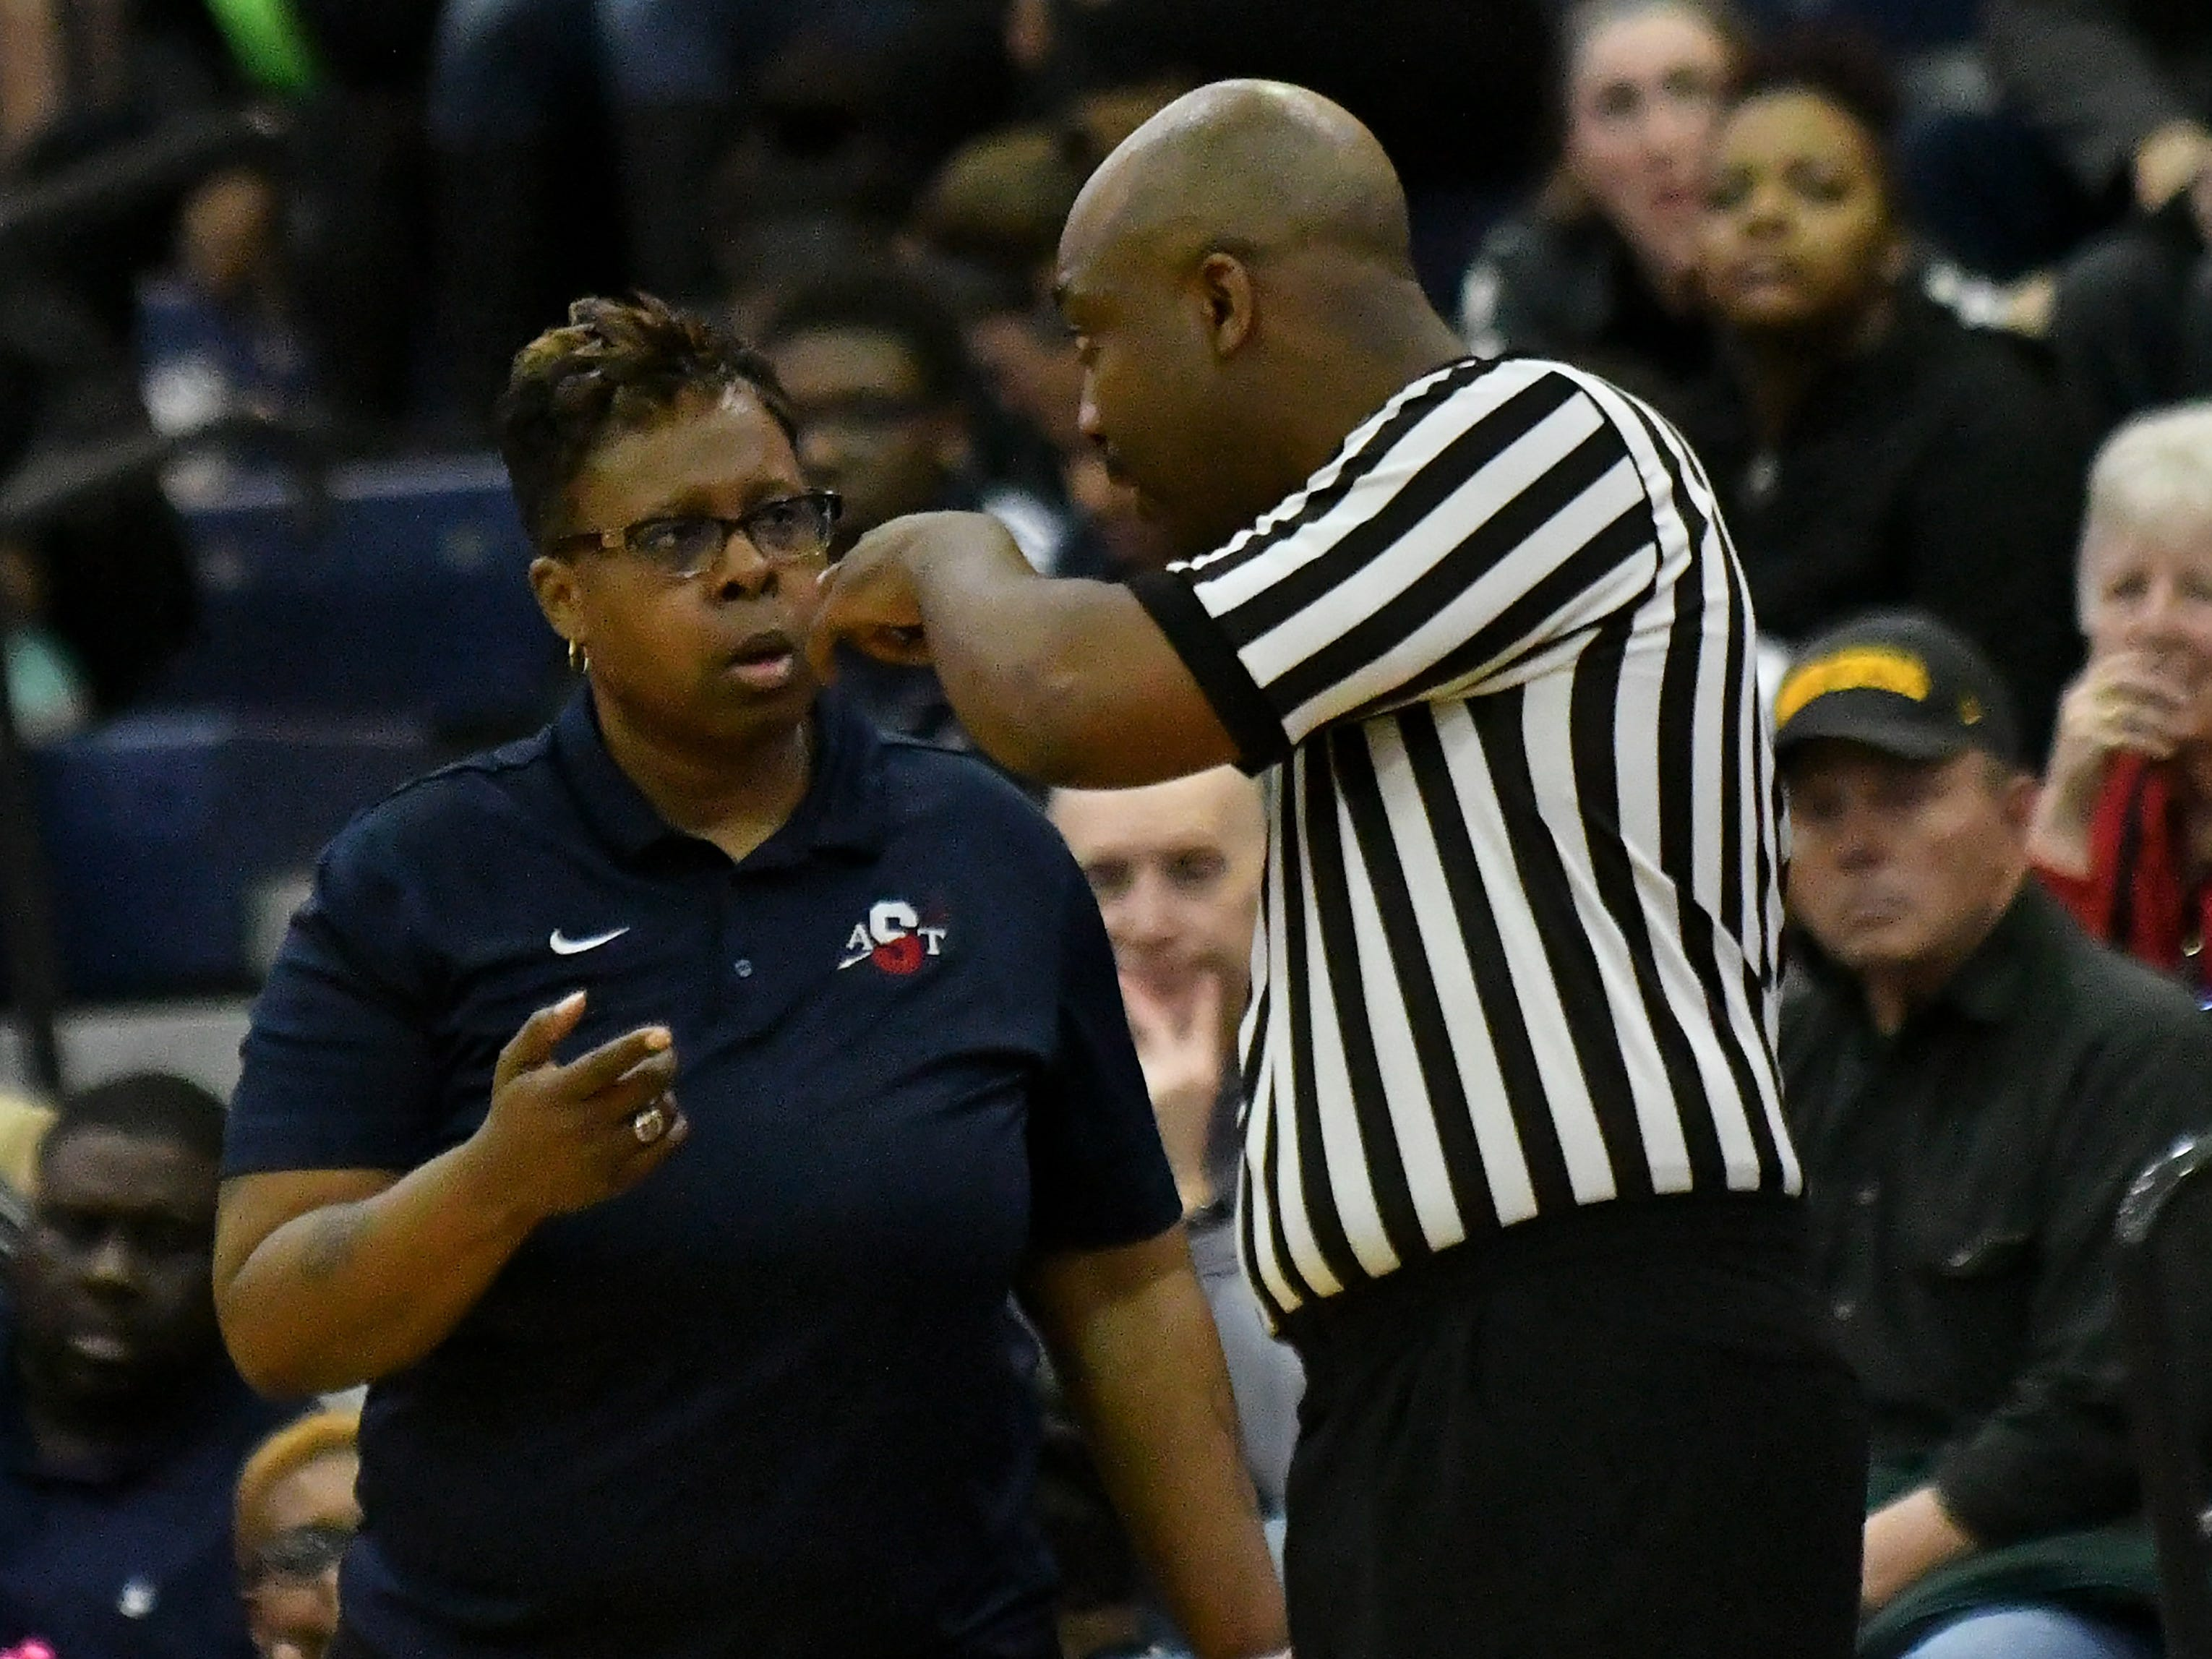 Southfield A&T coach Michele Marshall talks with a referee in the first half.